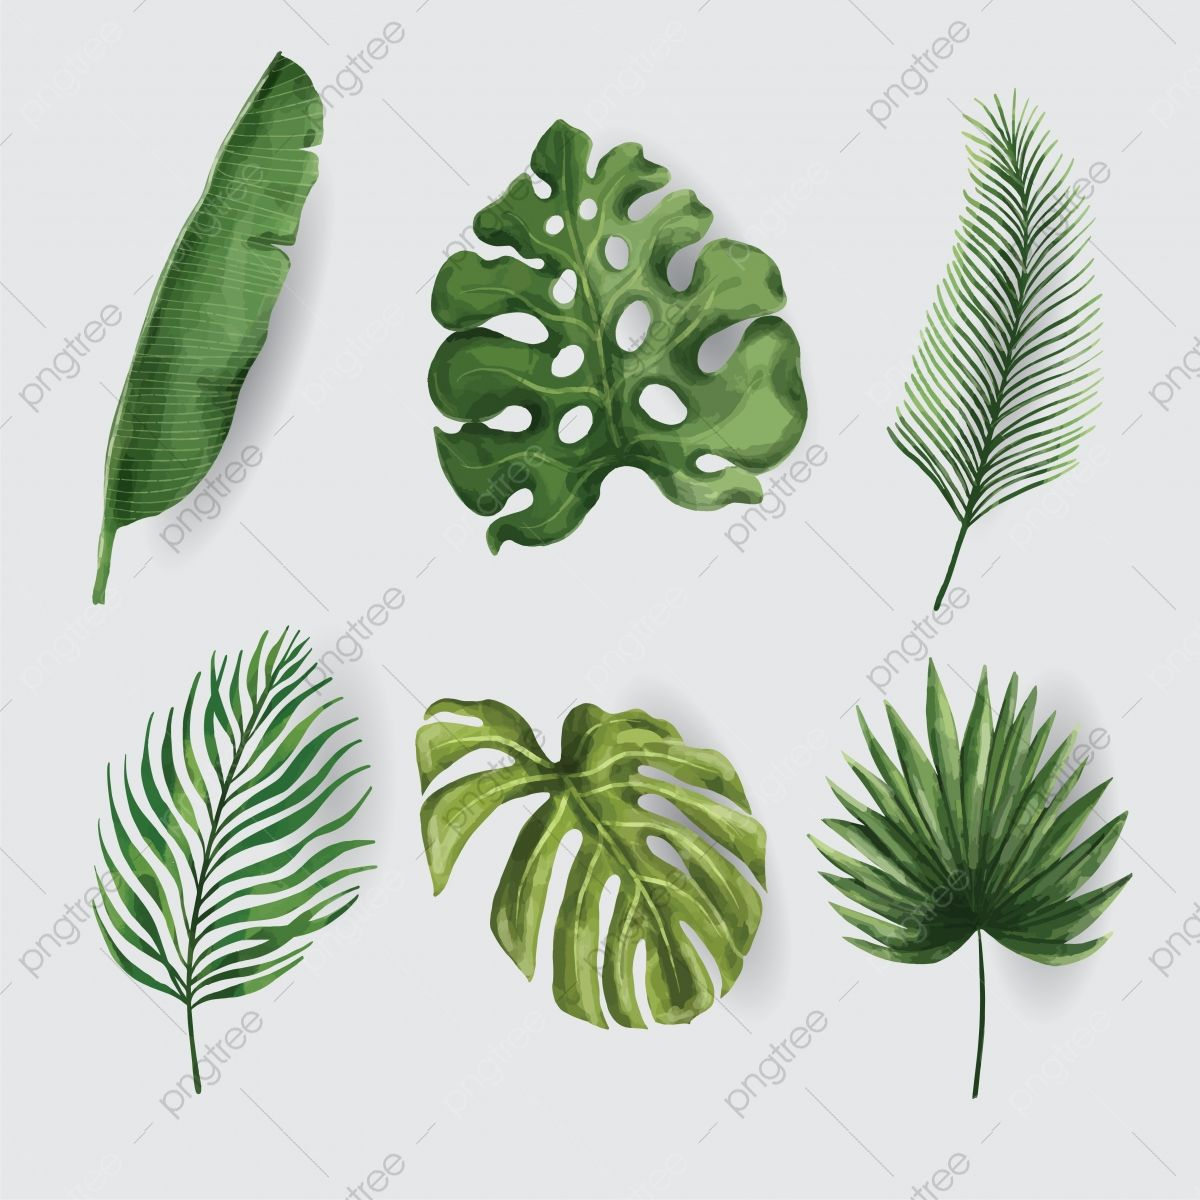 Tropical Leaf Watercolor Set Vector Leaf Clipart Eaf Colourful Png And Vector With Transparent Background For Free Download Tropical Leaves Leaf Clipart Botanical Decor